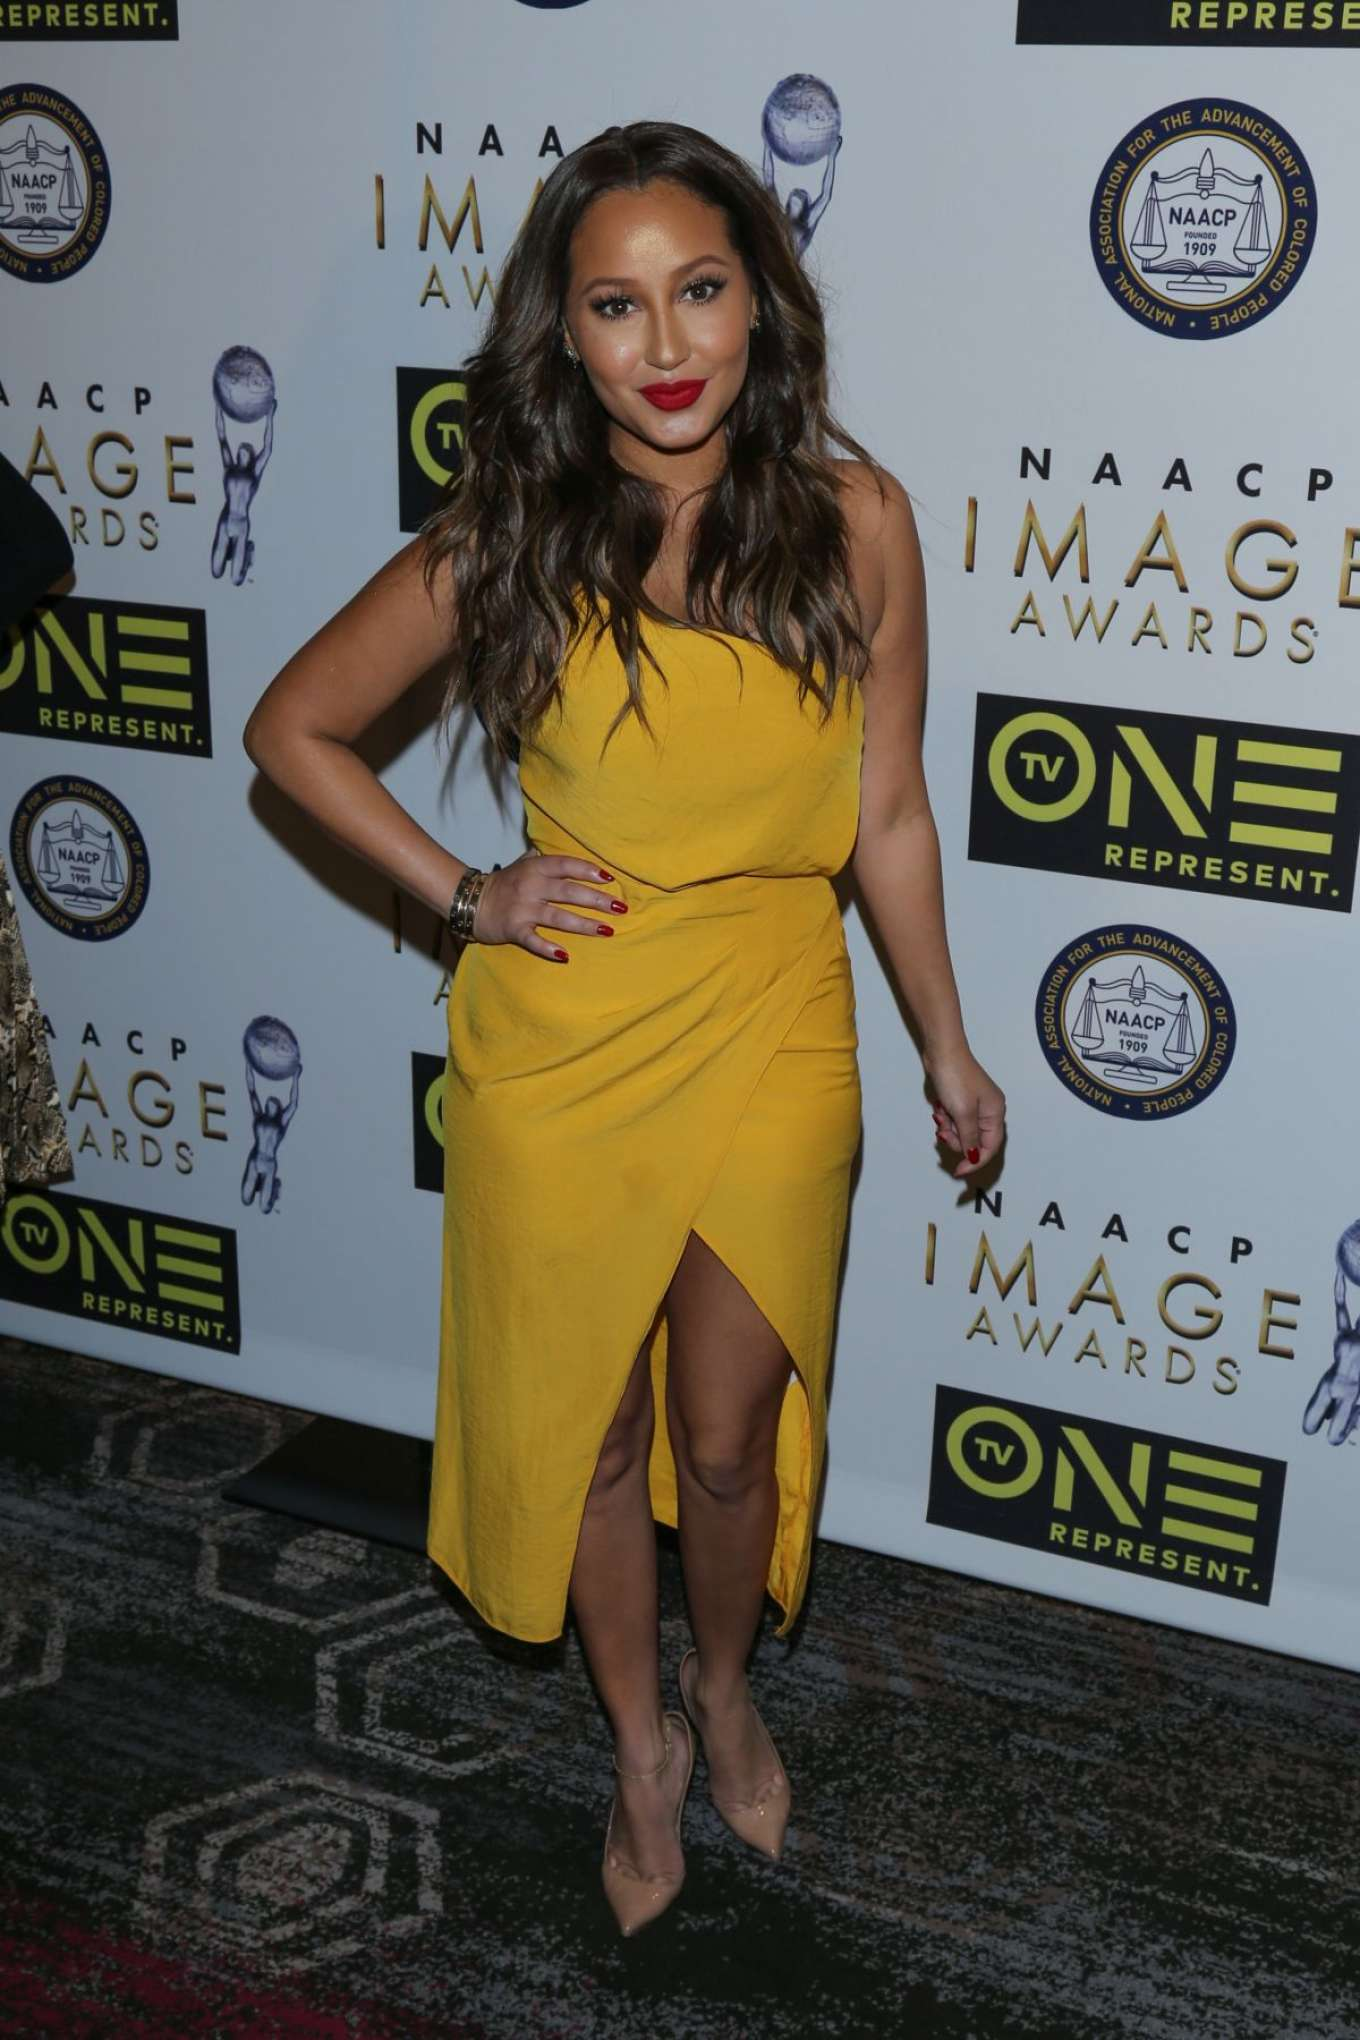 Adrienne bailon imagen awards in los angeles - 2019 year